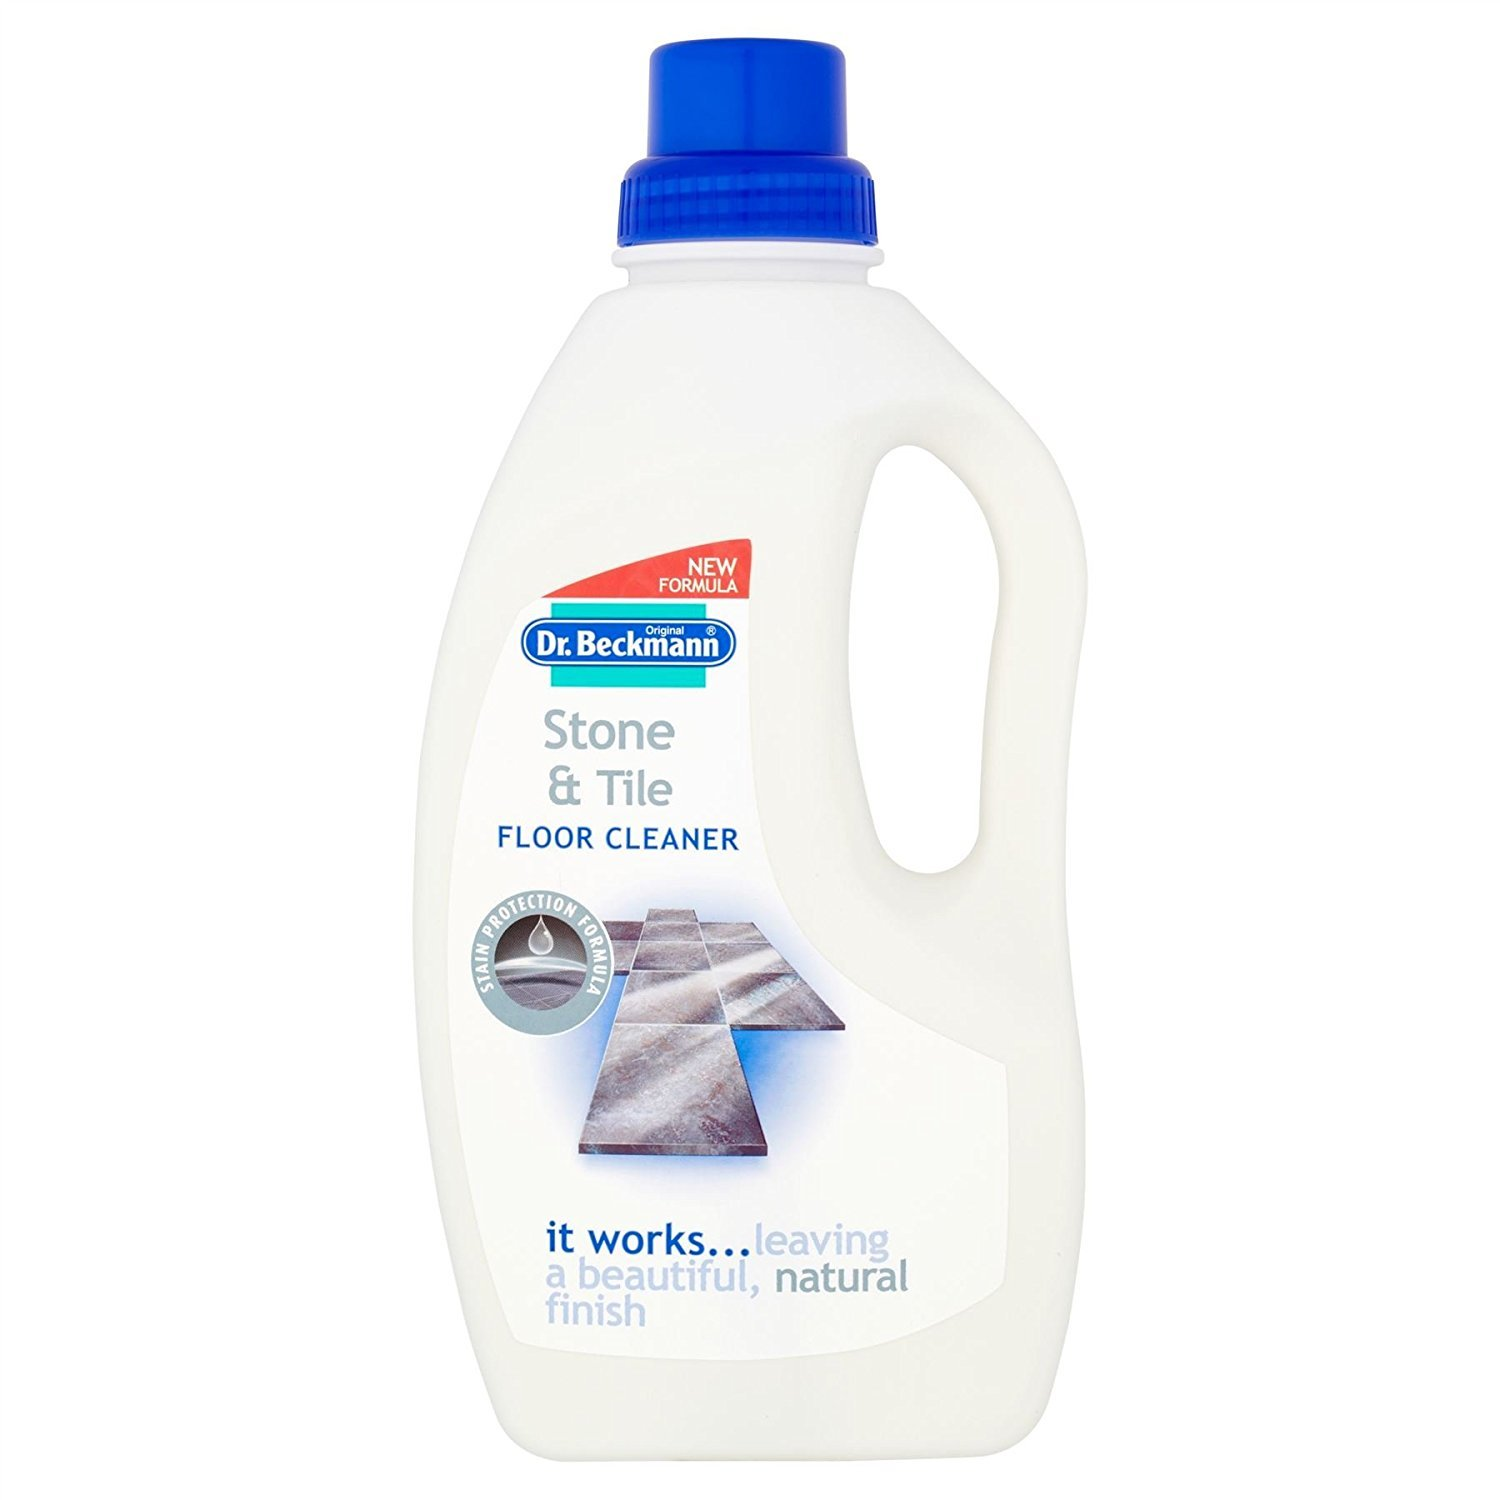 Dr. Beckmann Stone & Tile Floor Cleaner (1L) Grocery